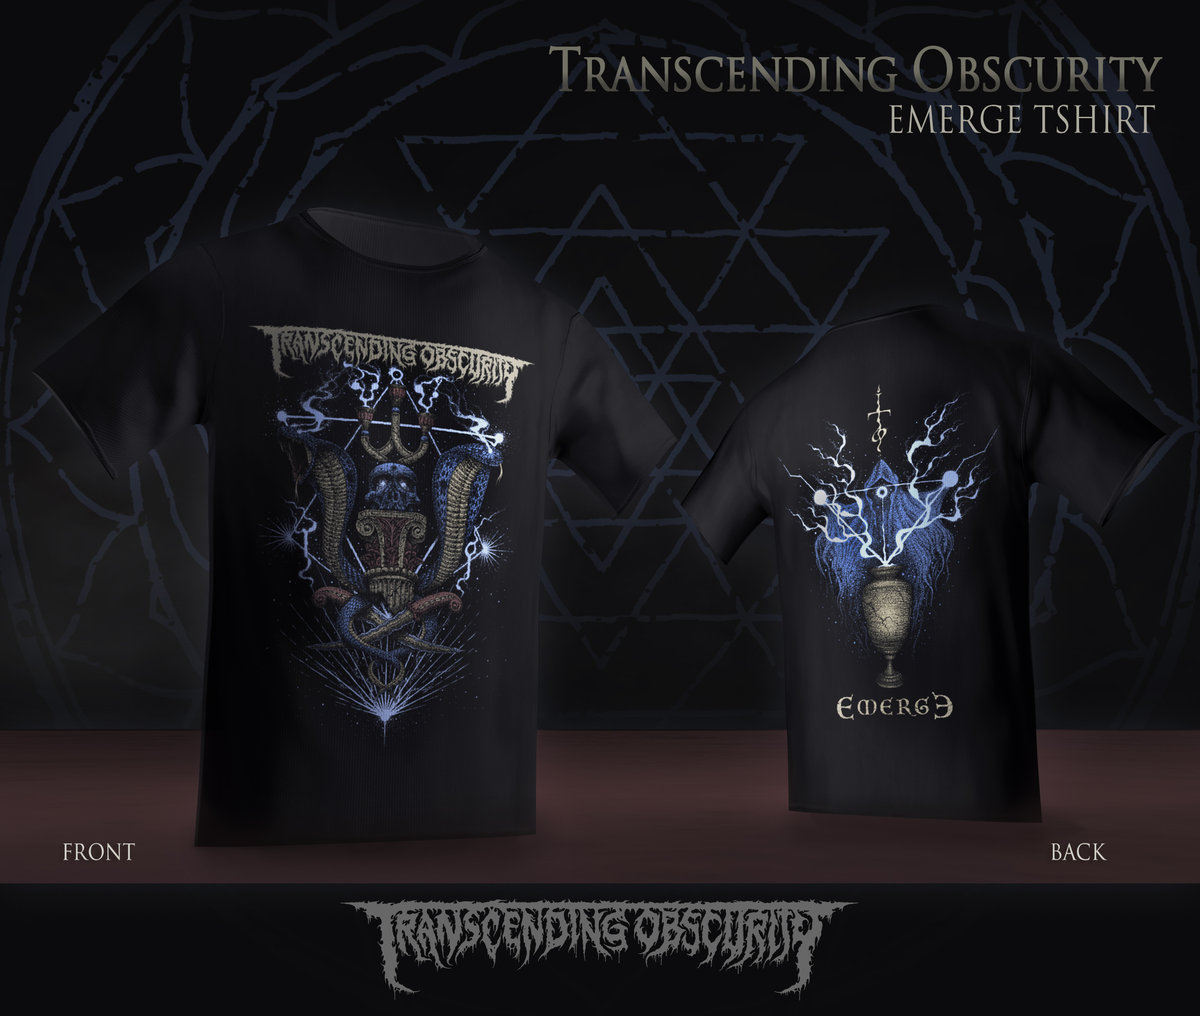 Transcending Obscurity 2019 Label Sampler T-shirt